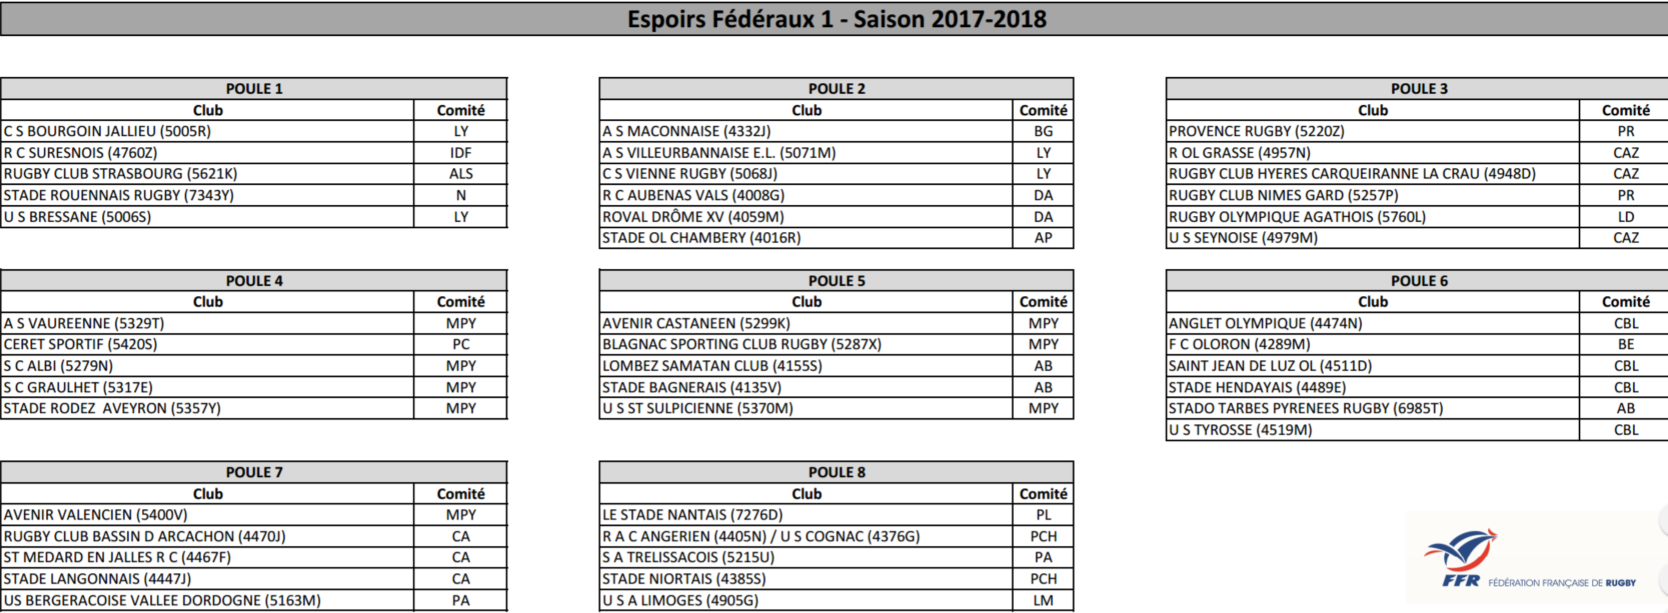 poules fed 1 2017 2018